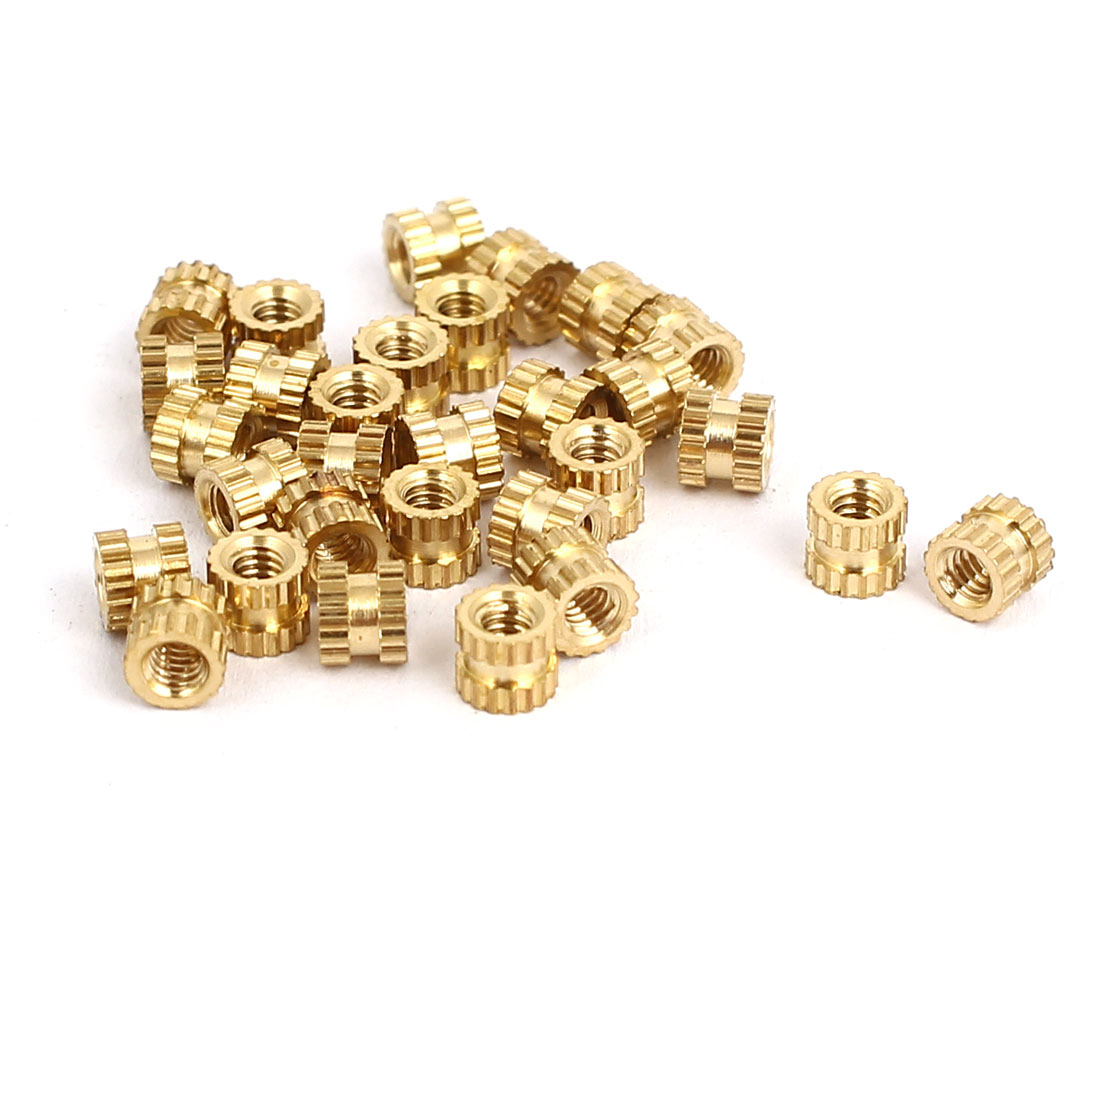 M2x3mmx3.5mm Female Threaded Brass Knurled Insert Embedded Nuts Gold Tone 30pcs